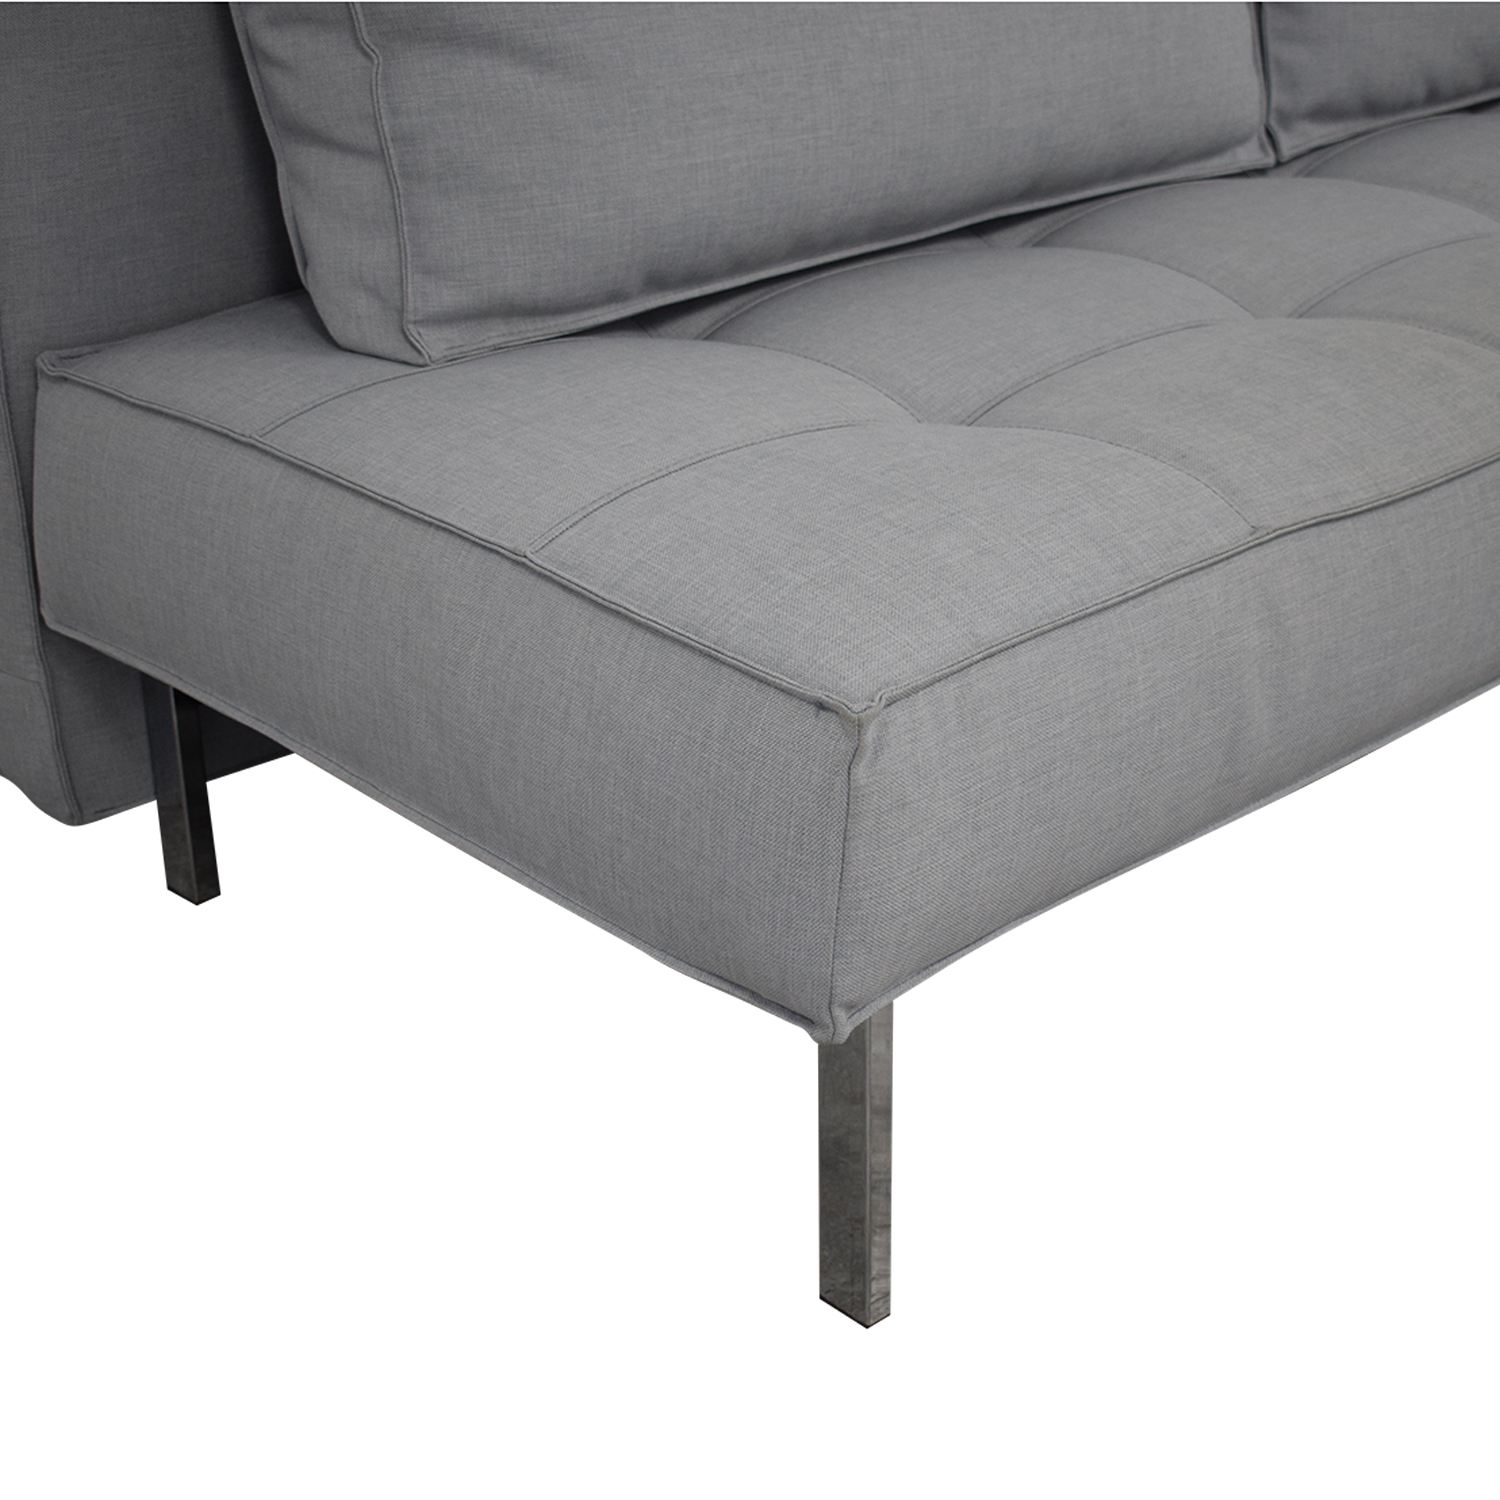 Innovation Living Innovation Living Sly Deluxe Sofa Bed second hand